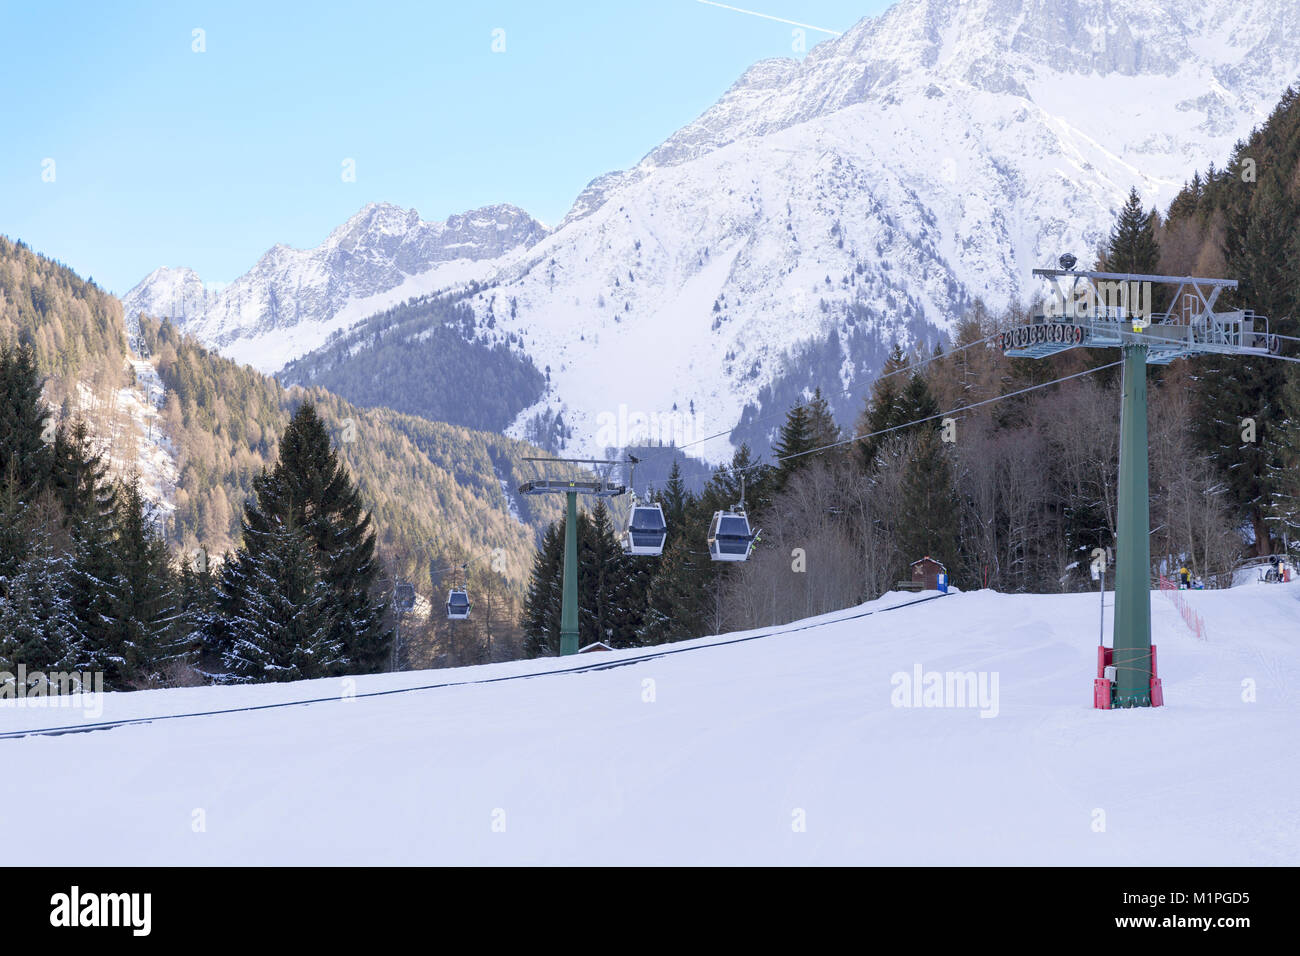 Cableway lift cable cars, gondola cabins on winter snowy mountains background beautiful scenery. - Stock Image